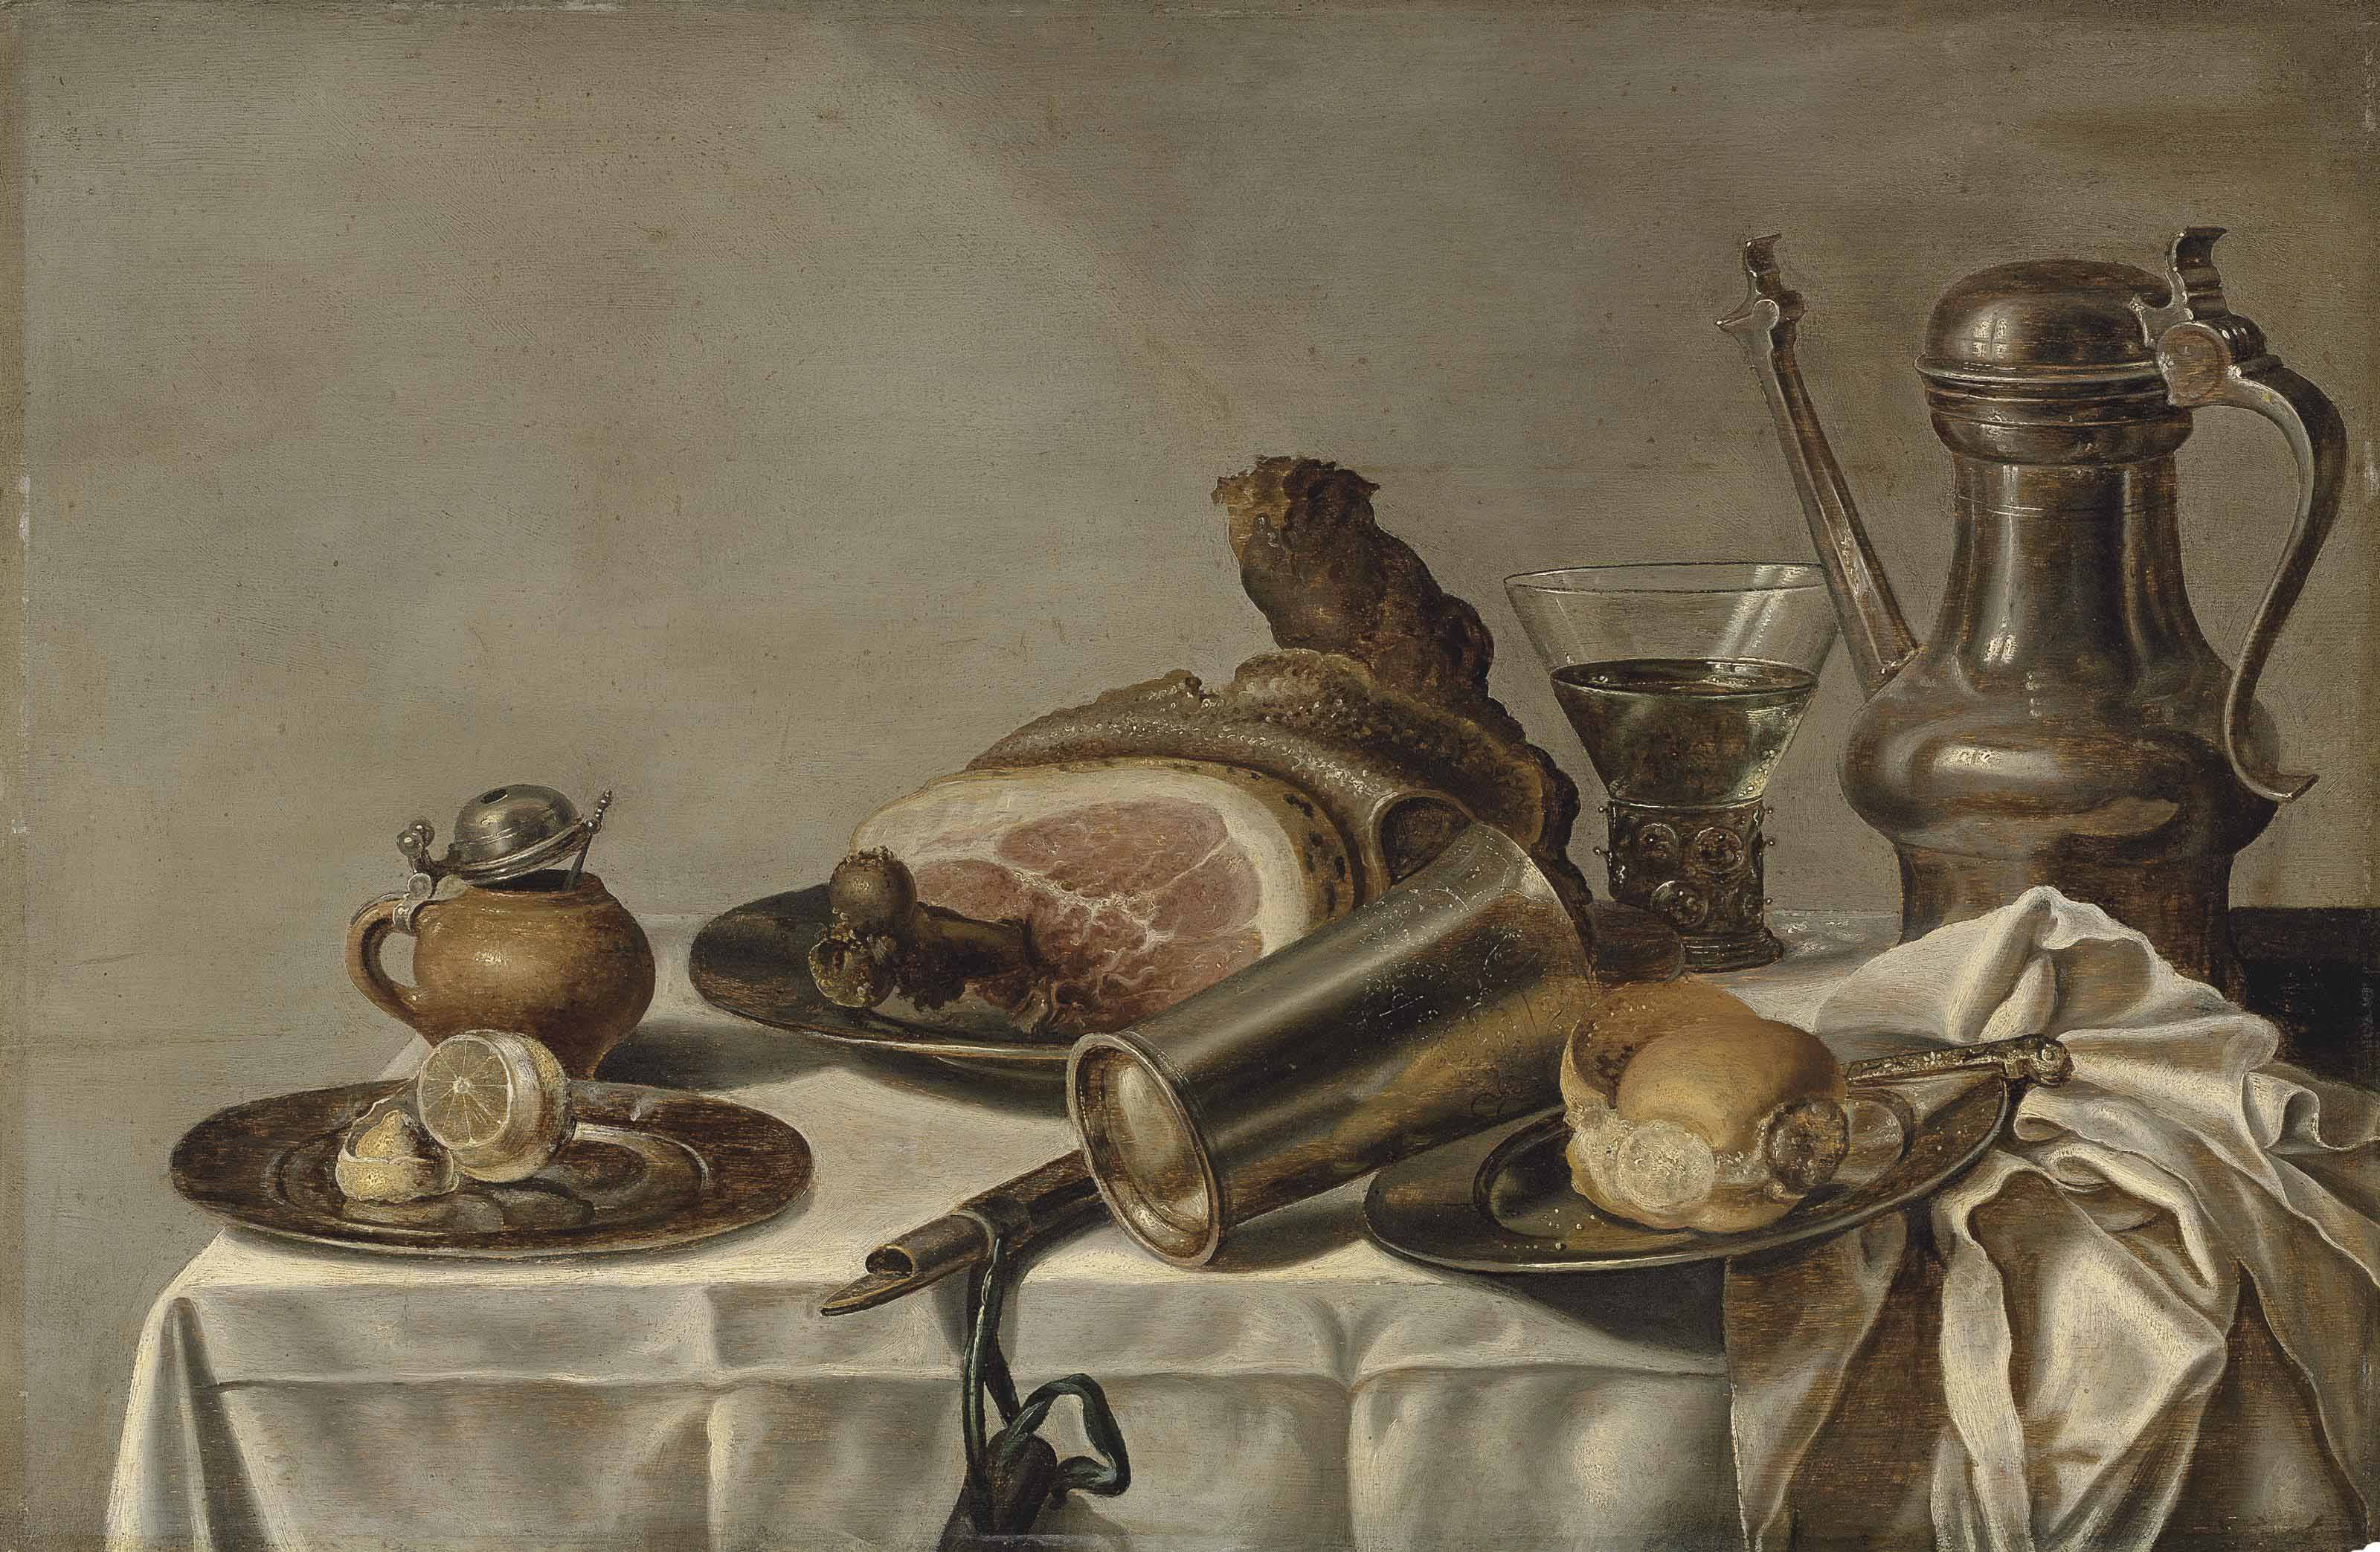 A ham on a pewter platter, a pealed lemon and a roll on pewter platters, a tankard, a roemer and a goblet, on a partly-draped table